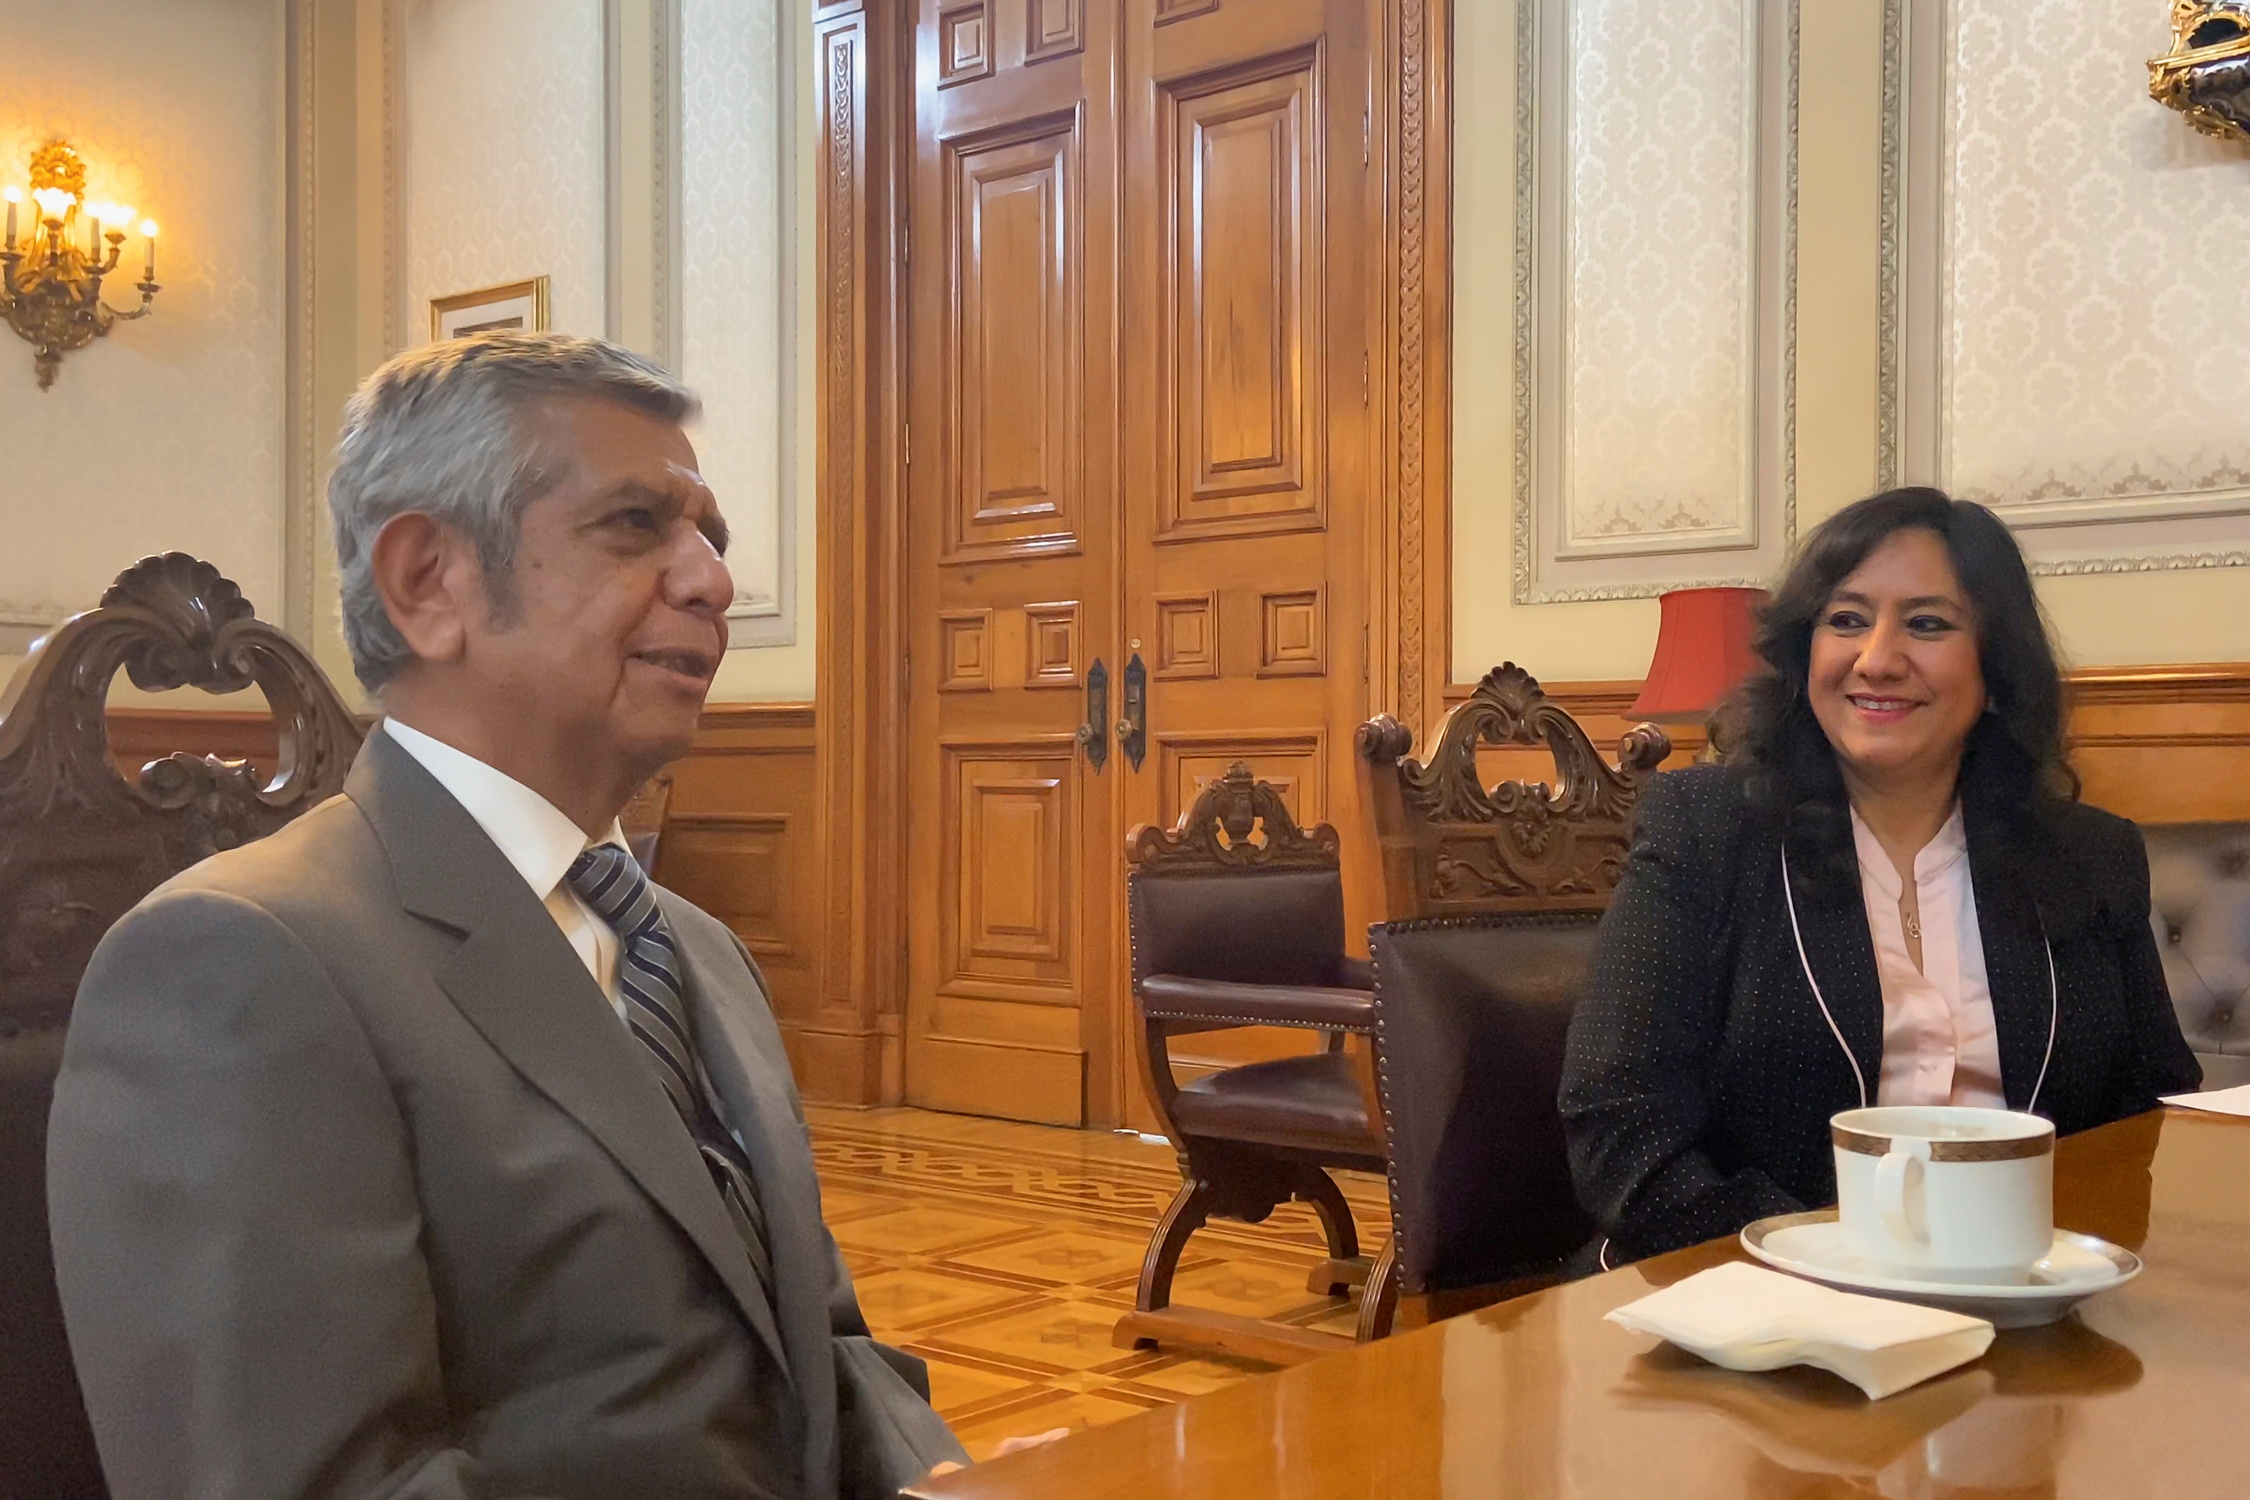 Newly appointed head of the Public Administration Ministry (SFP) Roberto Saucedo and outgoing minister Irma Sandoval attend a meeting with Mexican President Andres Manuel Lopez Obrador (not pictured) at the National Palace in Mexico City, Mexico June 21, 2021. Mexico's Presidency/Handout via REUTERS